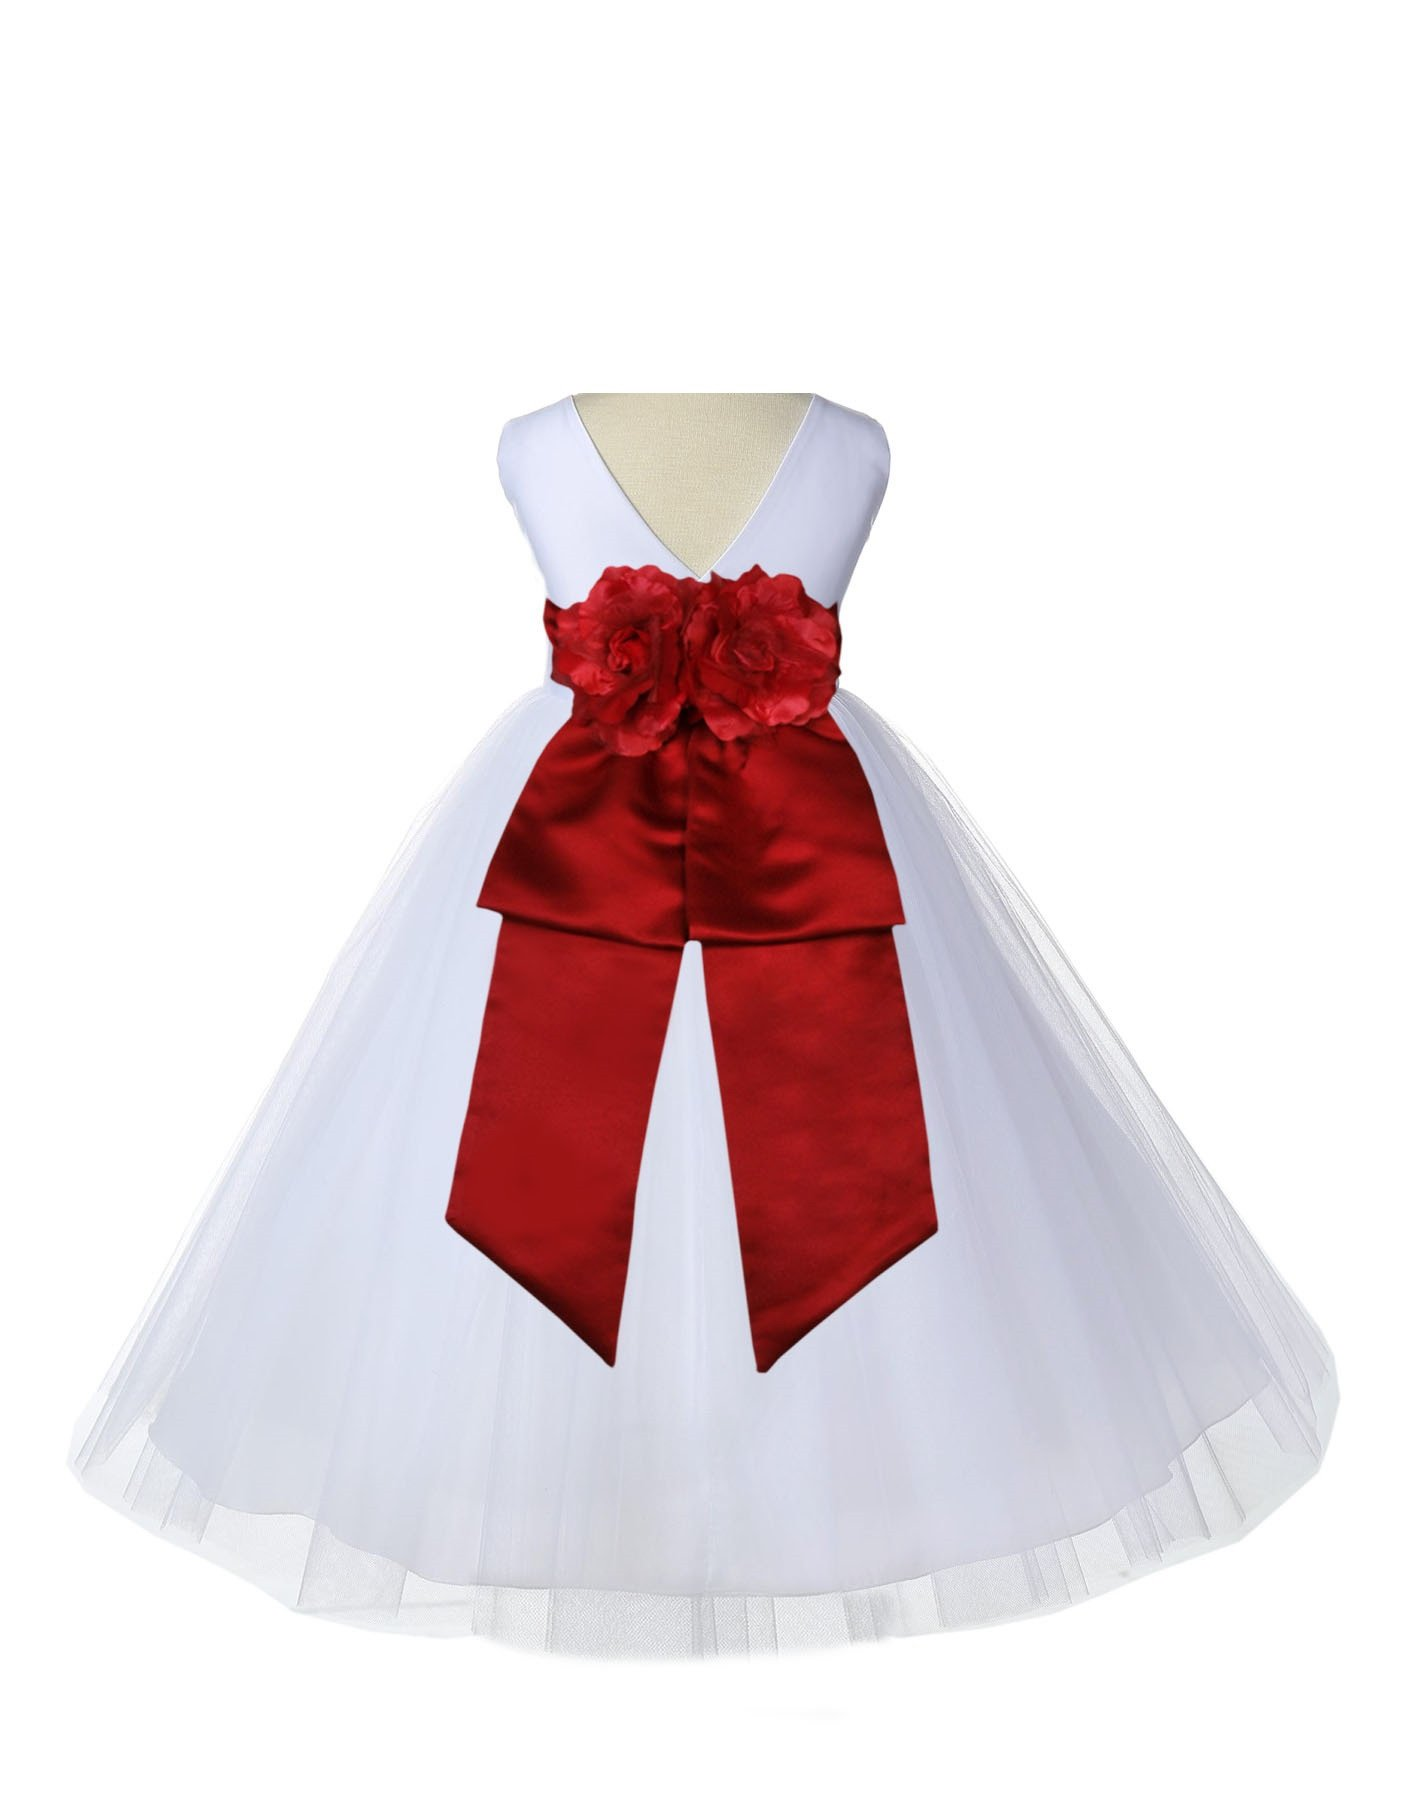 43ceb5123c5 We used an additional petticoat for the picture that is not included with  the dress. - Material  Elegant Satin Poly   Polyester Tulle   Satin Lining  - The ...